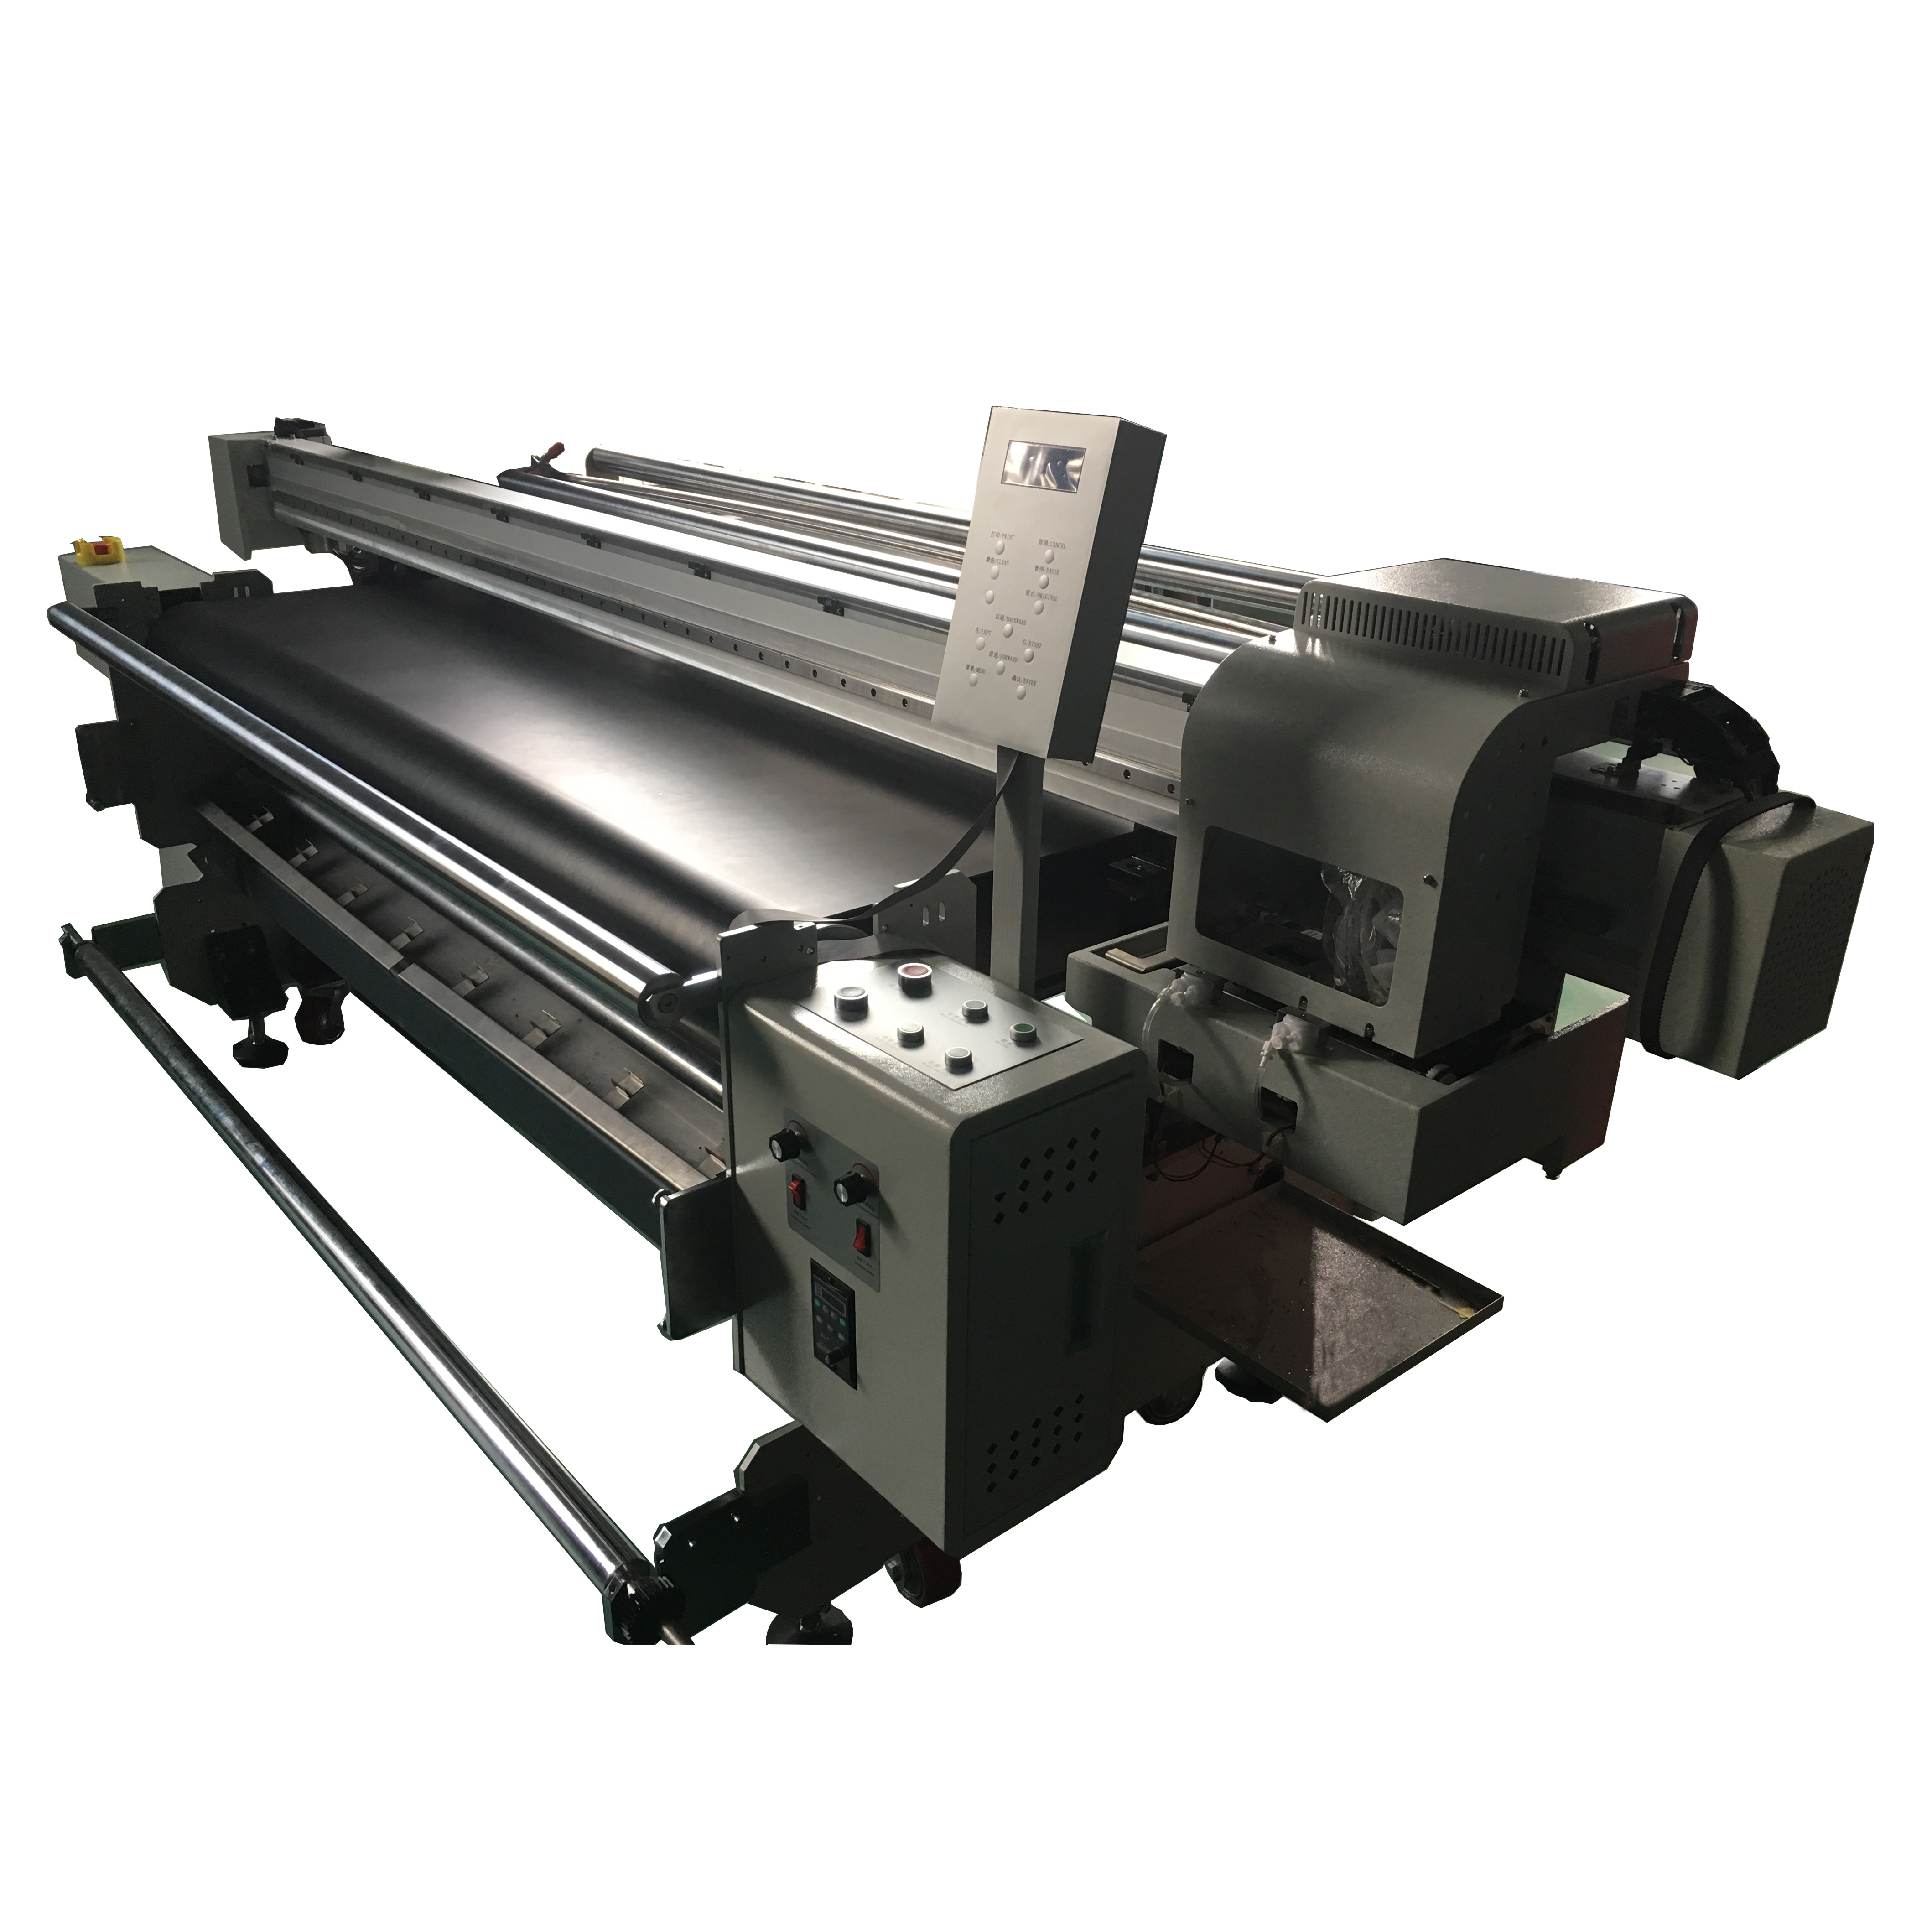 Commercial Digital Textile Fabric Printing Machine 1 8m - Buy Fabric  Printing Machine,Textile Printing Machine,Commercial Digital Fabric  Printing